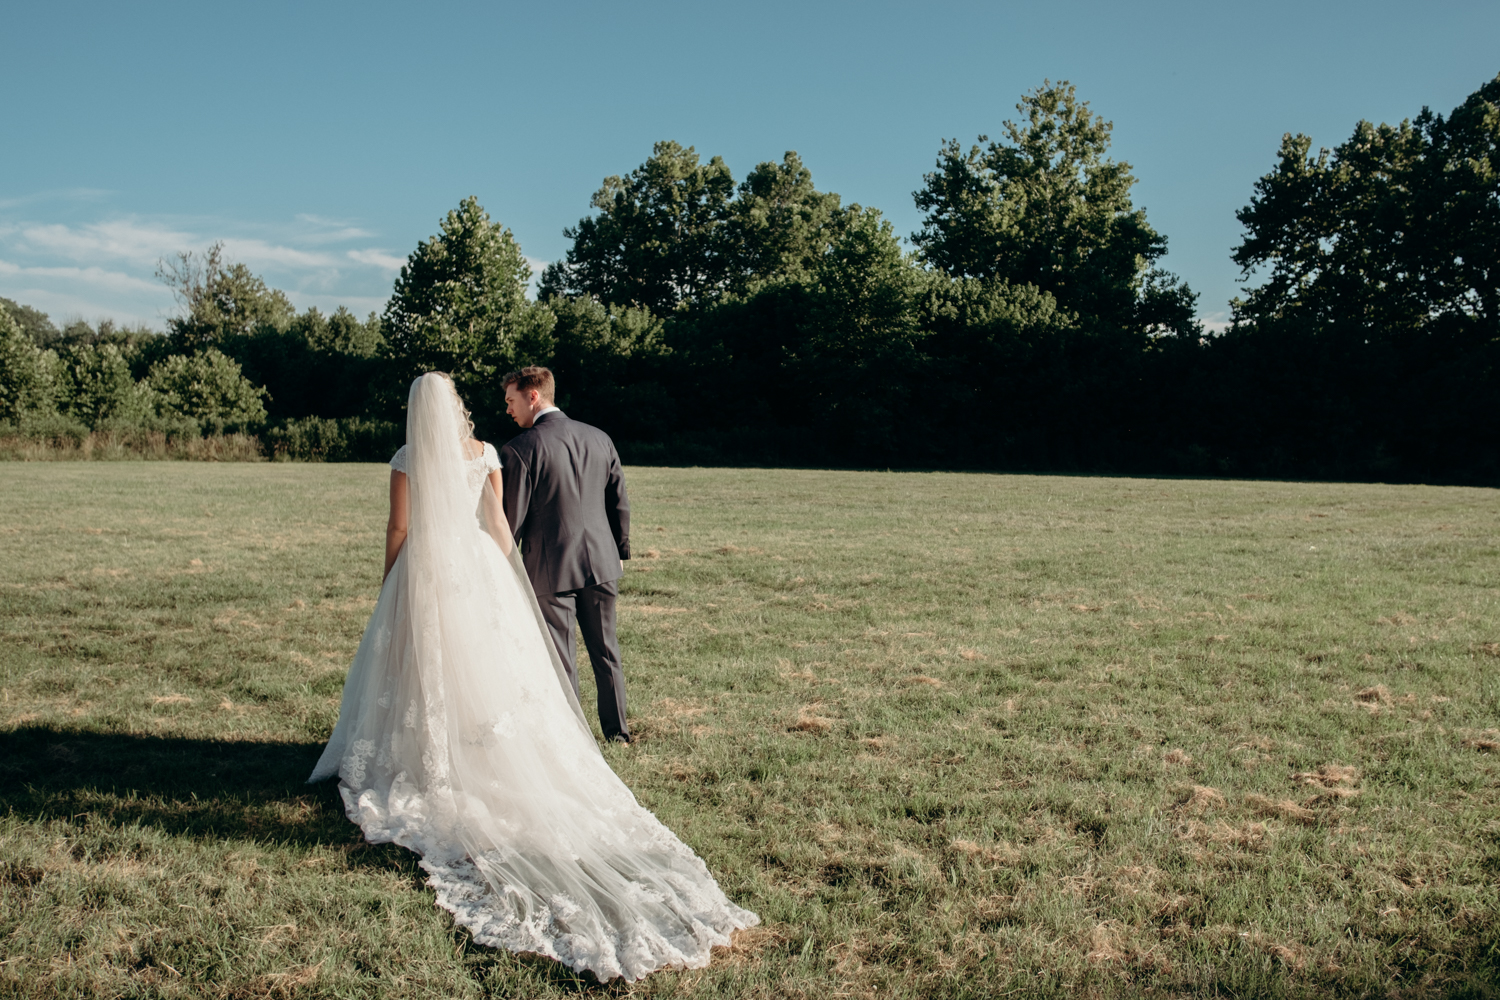 A husband and wife walk through a field in the sunshine after their outdoor wedding ceremony at Lansdowne Resort.